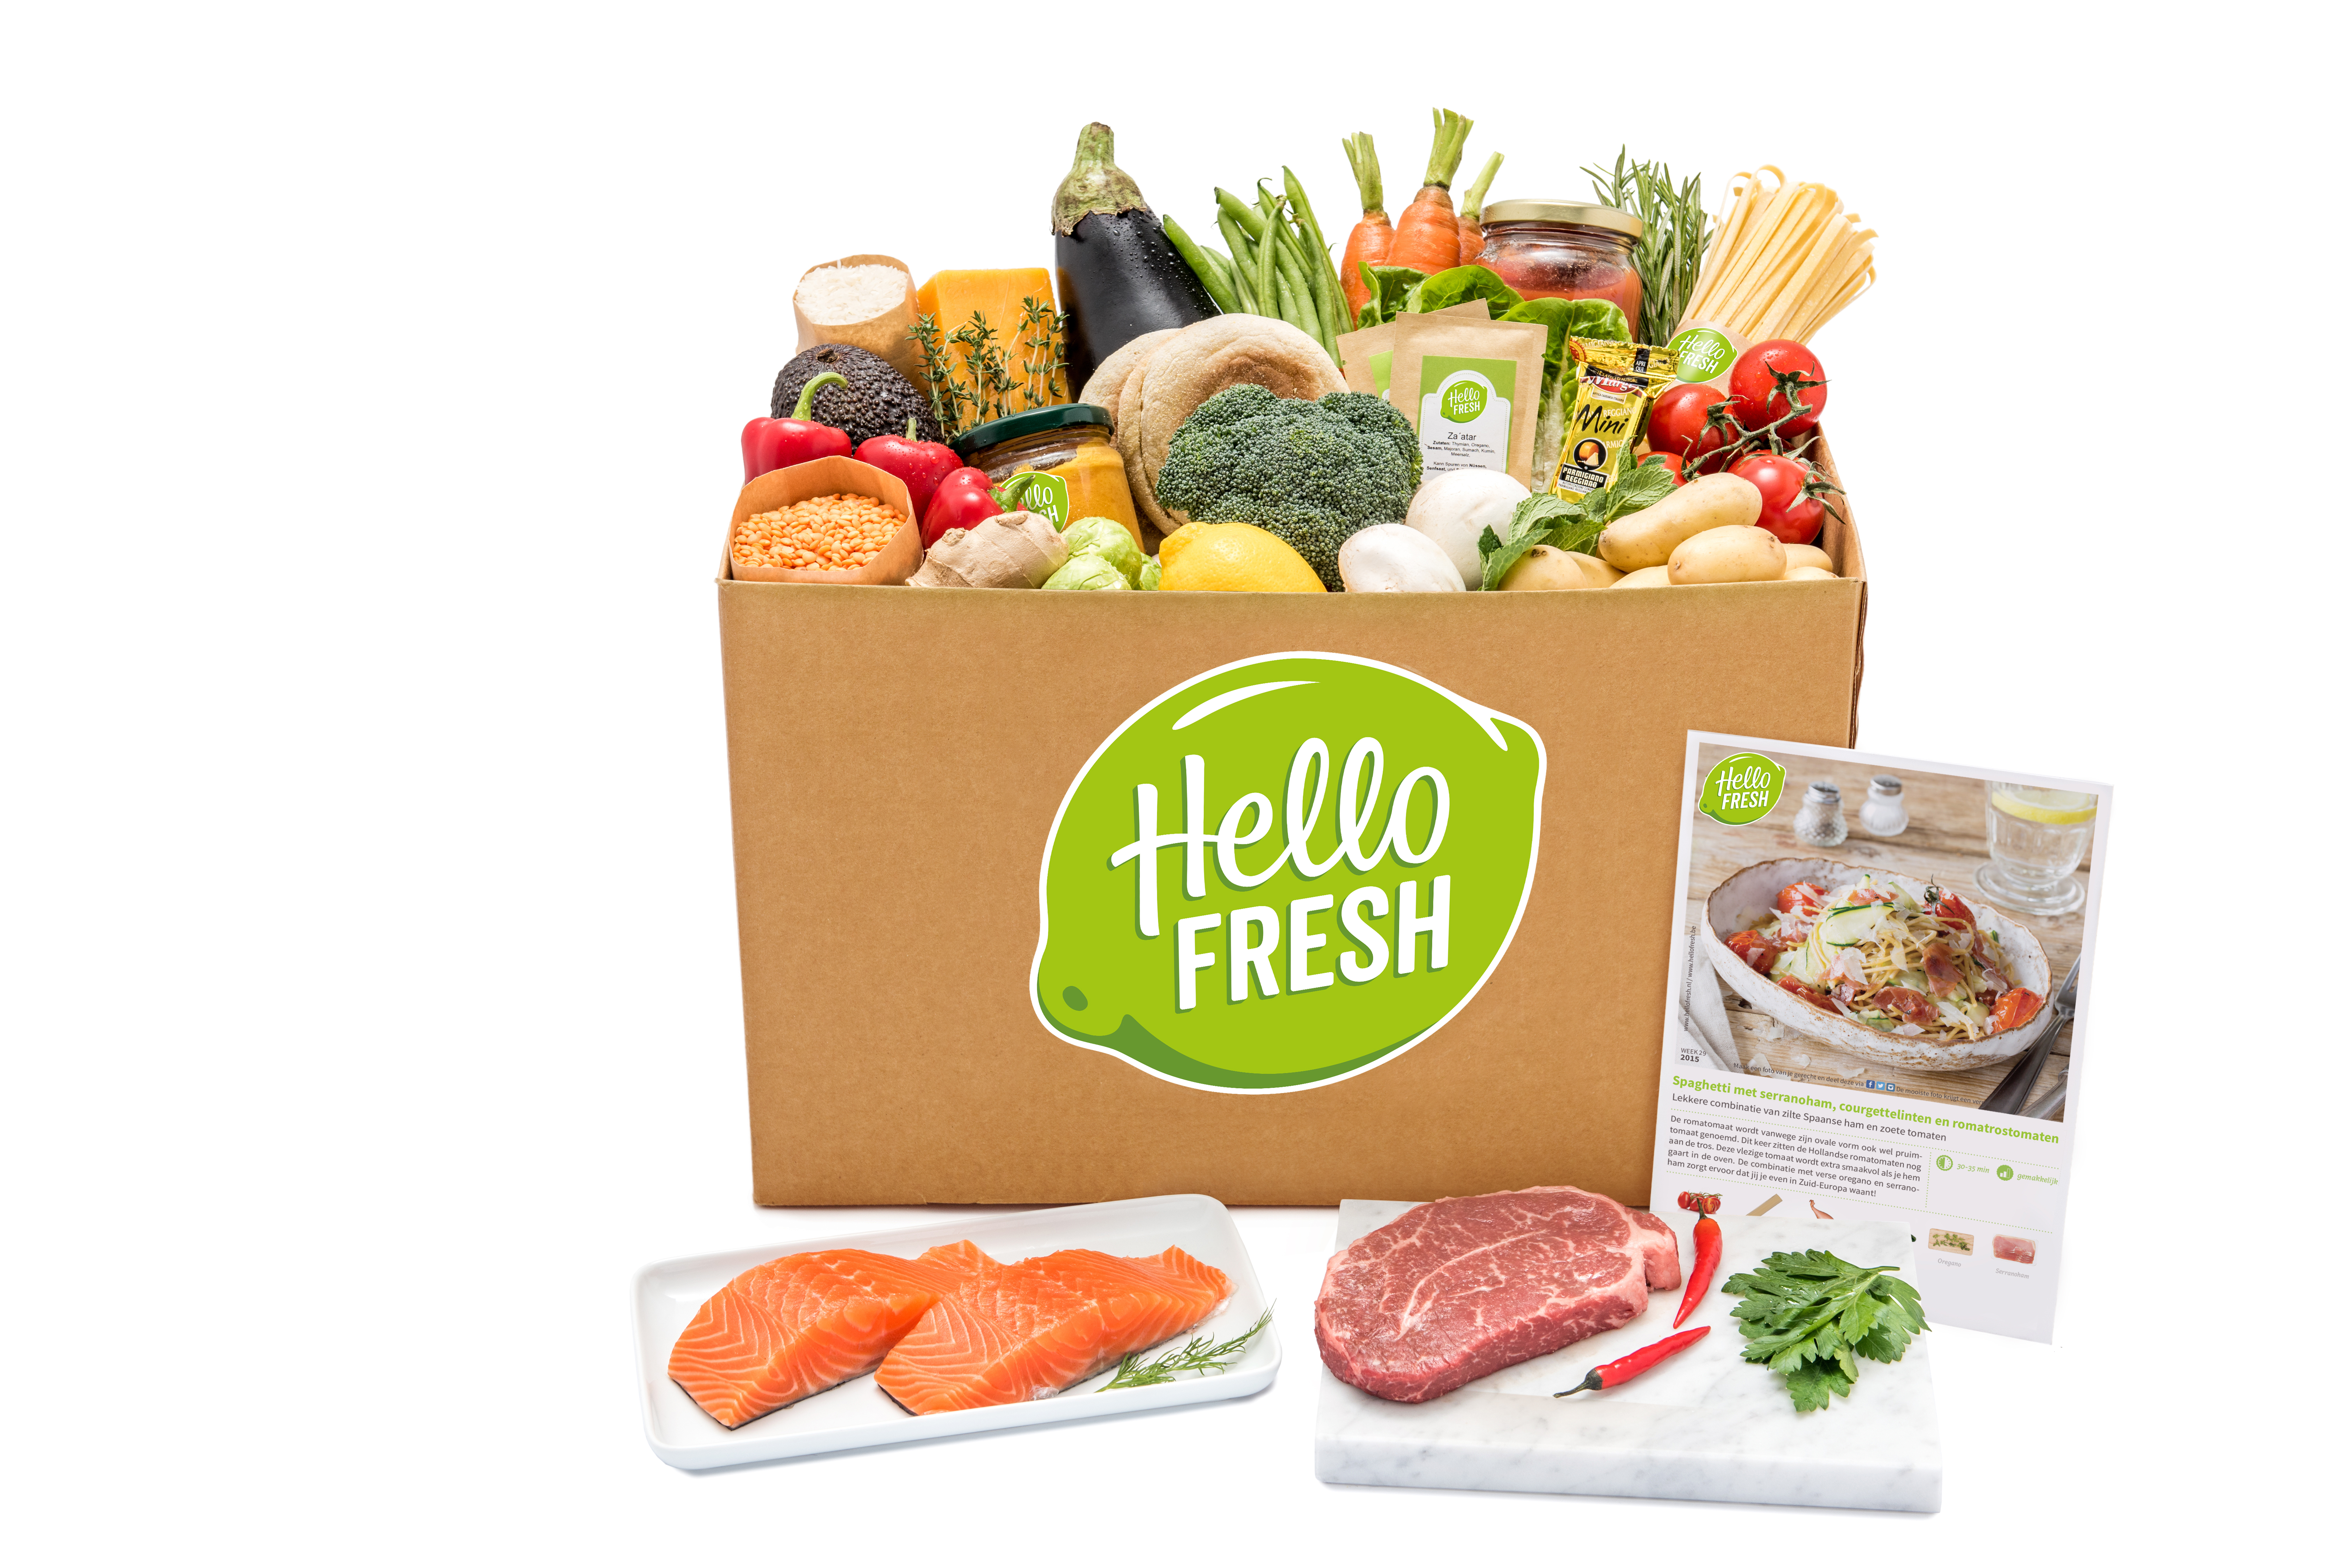 https://cdn.hellofresh.com/lu/cms/press/HelloFresh_Originalbox.jpg